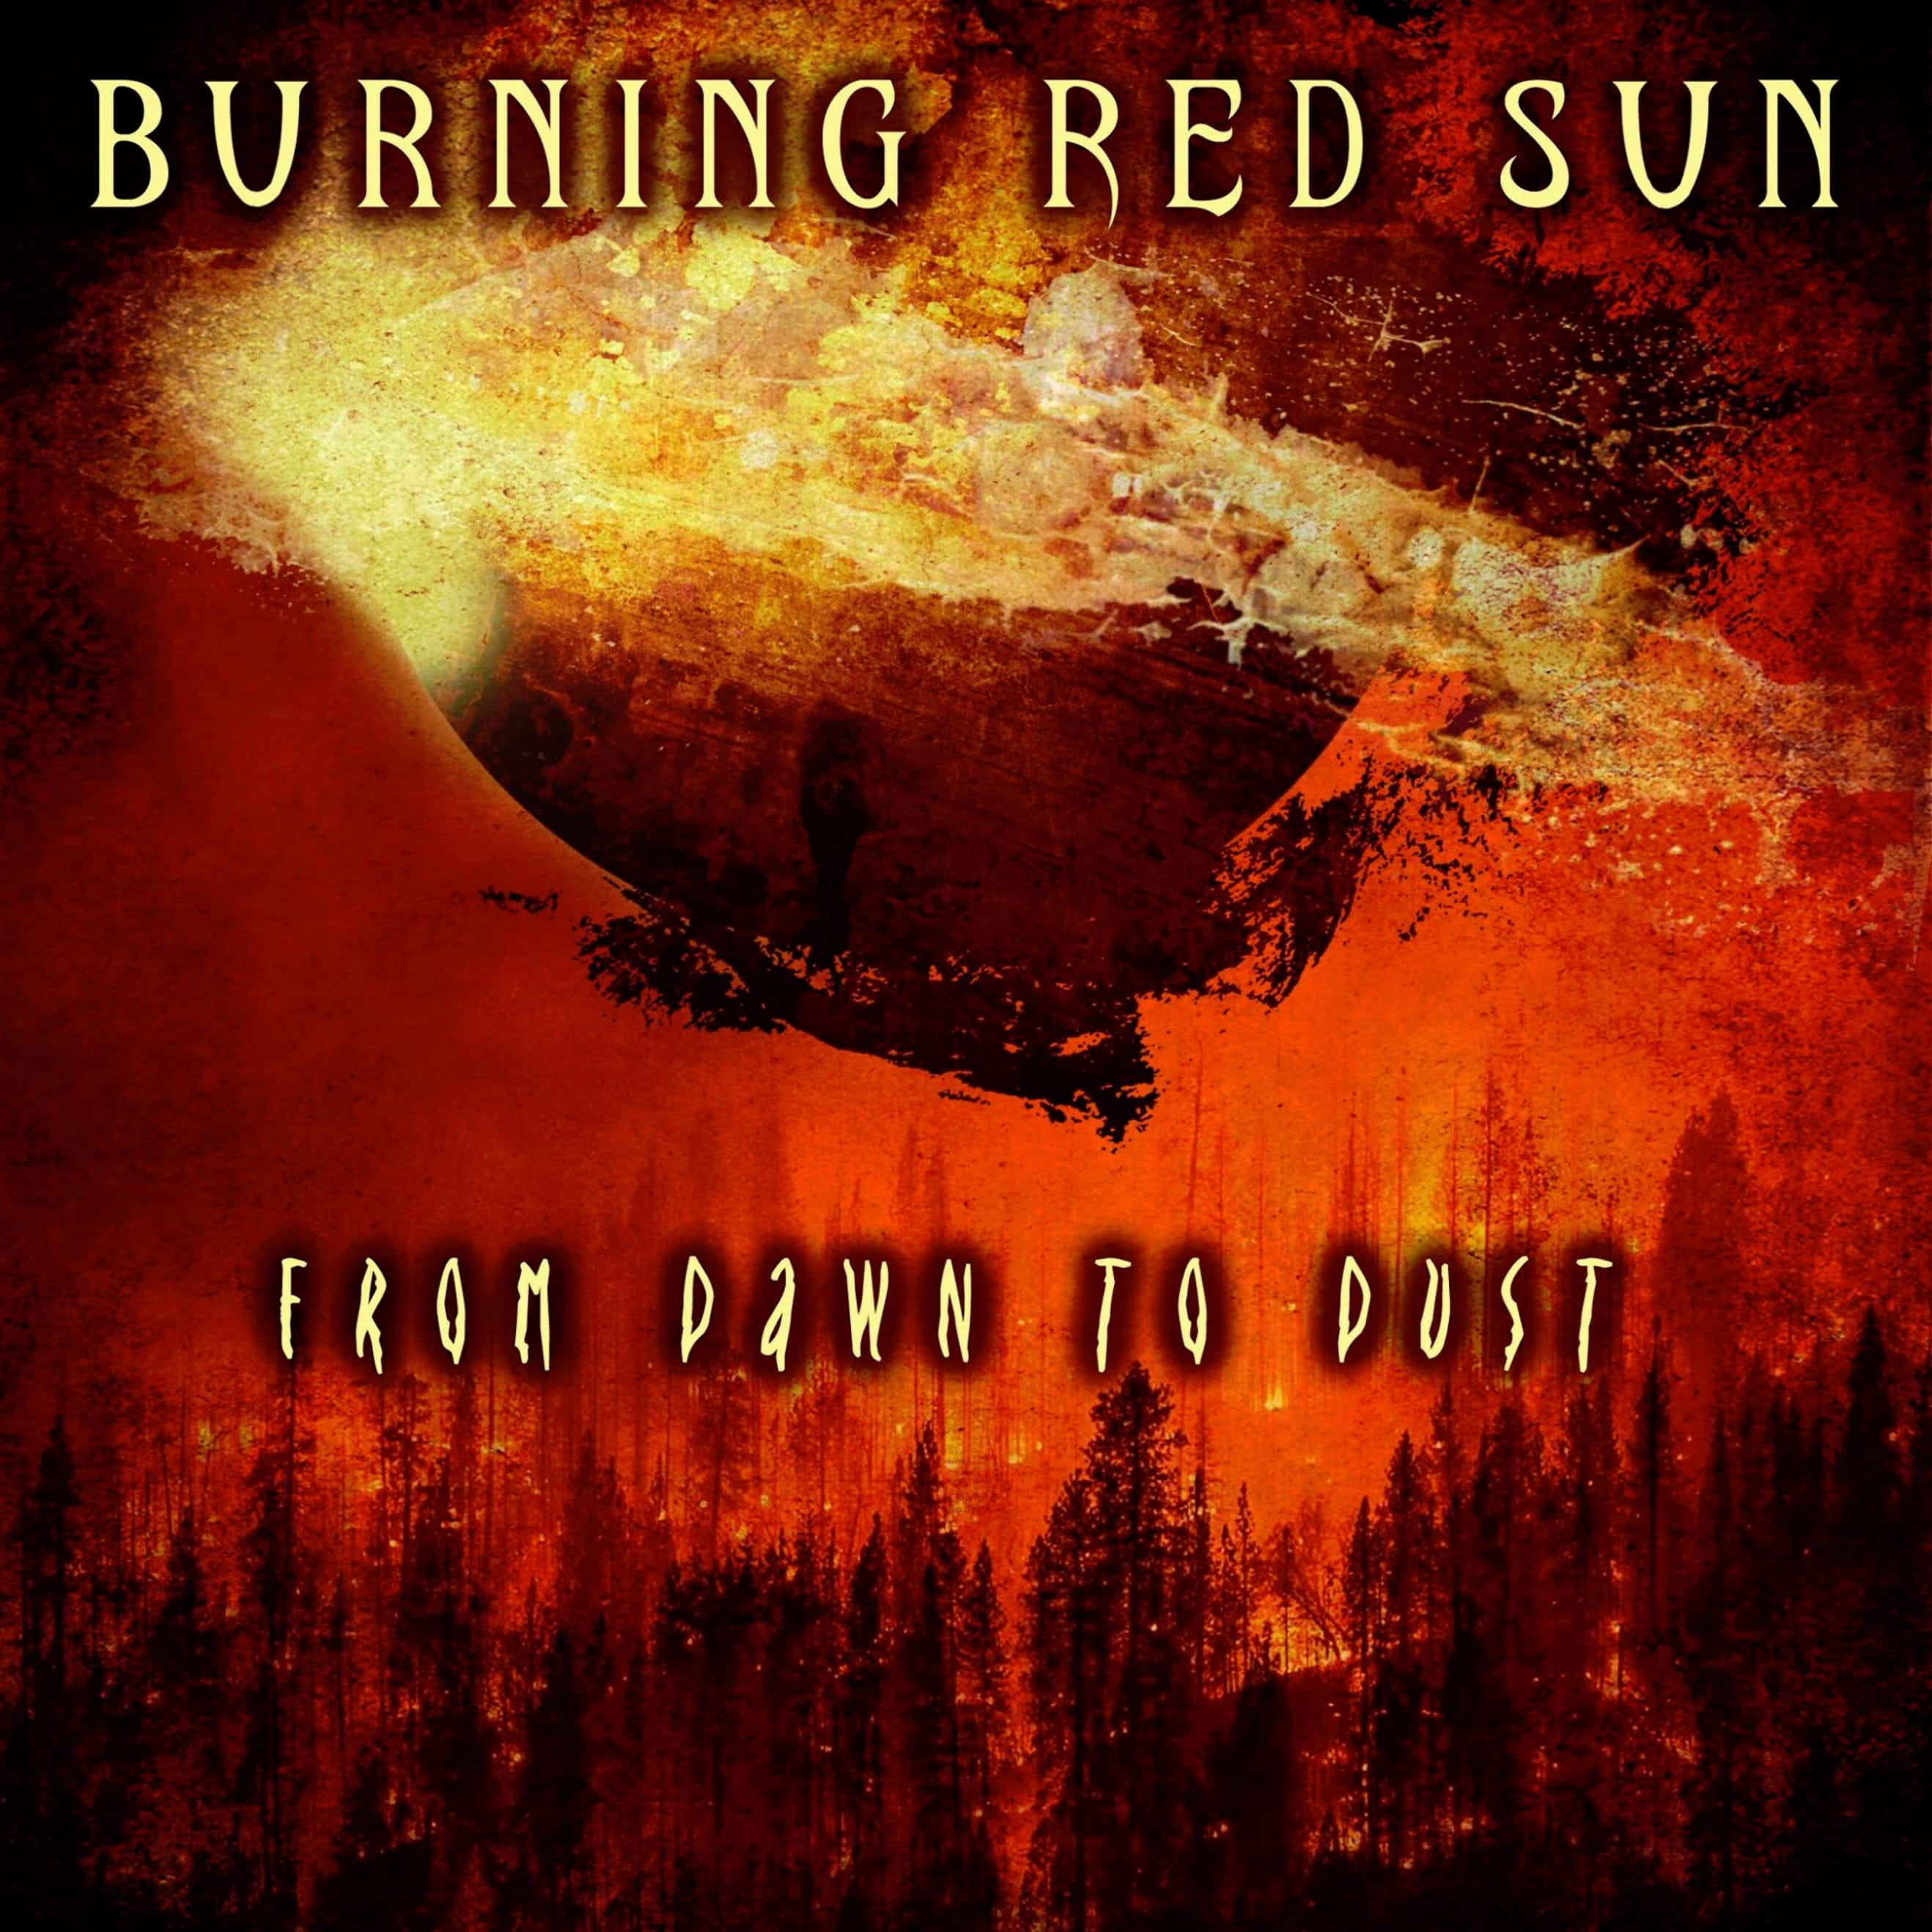 Burning red sun from dawn to dust  1491067850